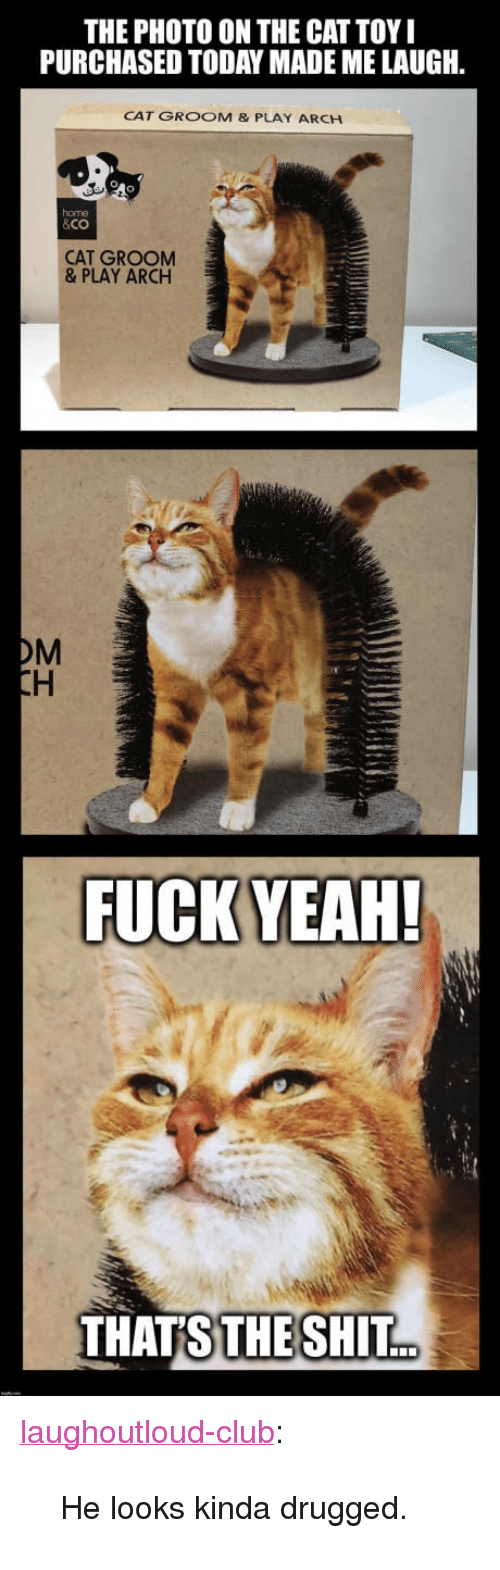 "Club, Shit, and Tumblr: THE PHOTO ON THE CAT TOY  PURCHASED TODAY MADE ME LAUGH  CAT GROOM & PLAY ARCH  home  &Co  CAT GROOM  & PLAY ARCH  OM  THATS  THE SHIT. <p><a href=""http://laughoutloud-club.tumblr.com/post/169556883628/he-looks-kinda-drugged"" class=""tumblr_blog"">laughoutloud-club</a>:</p>  <blockquote><p>He looks kinda drugged.</p></blockquote>"